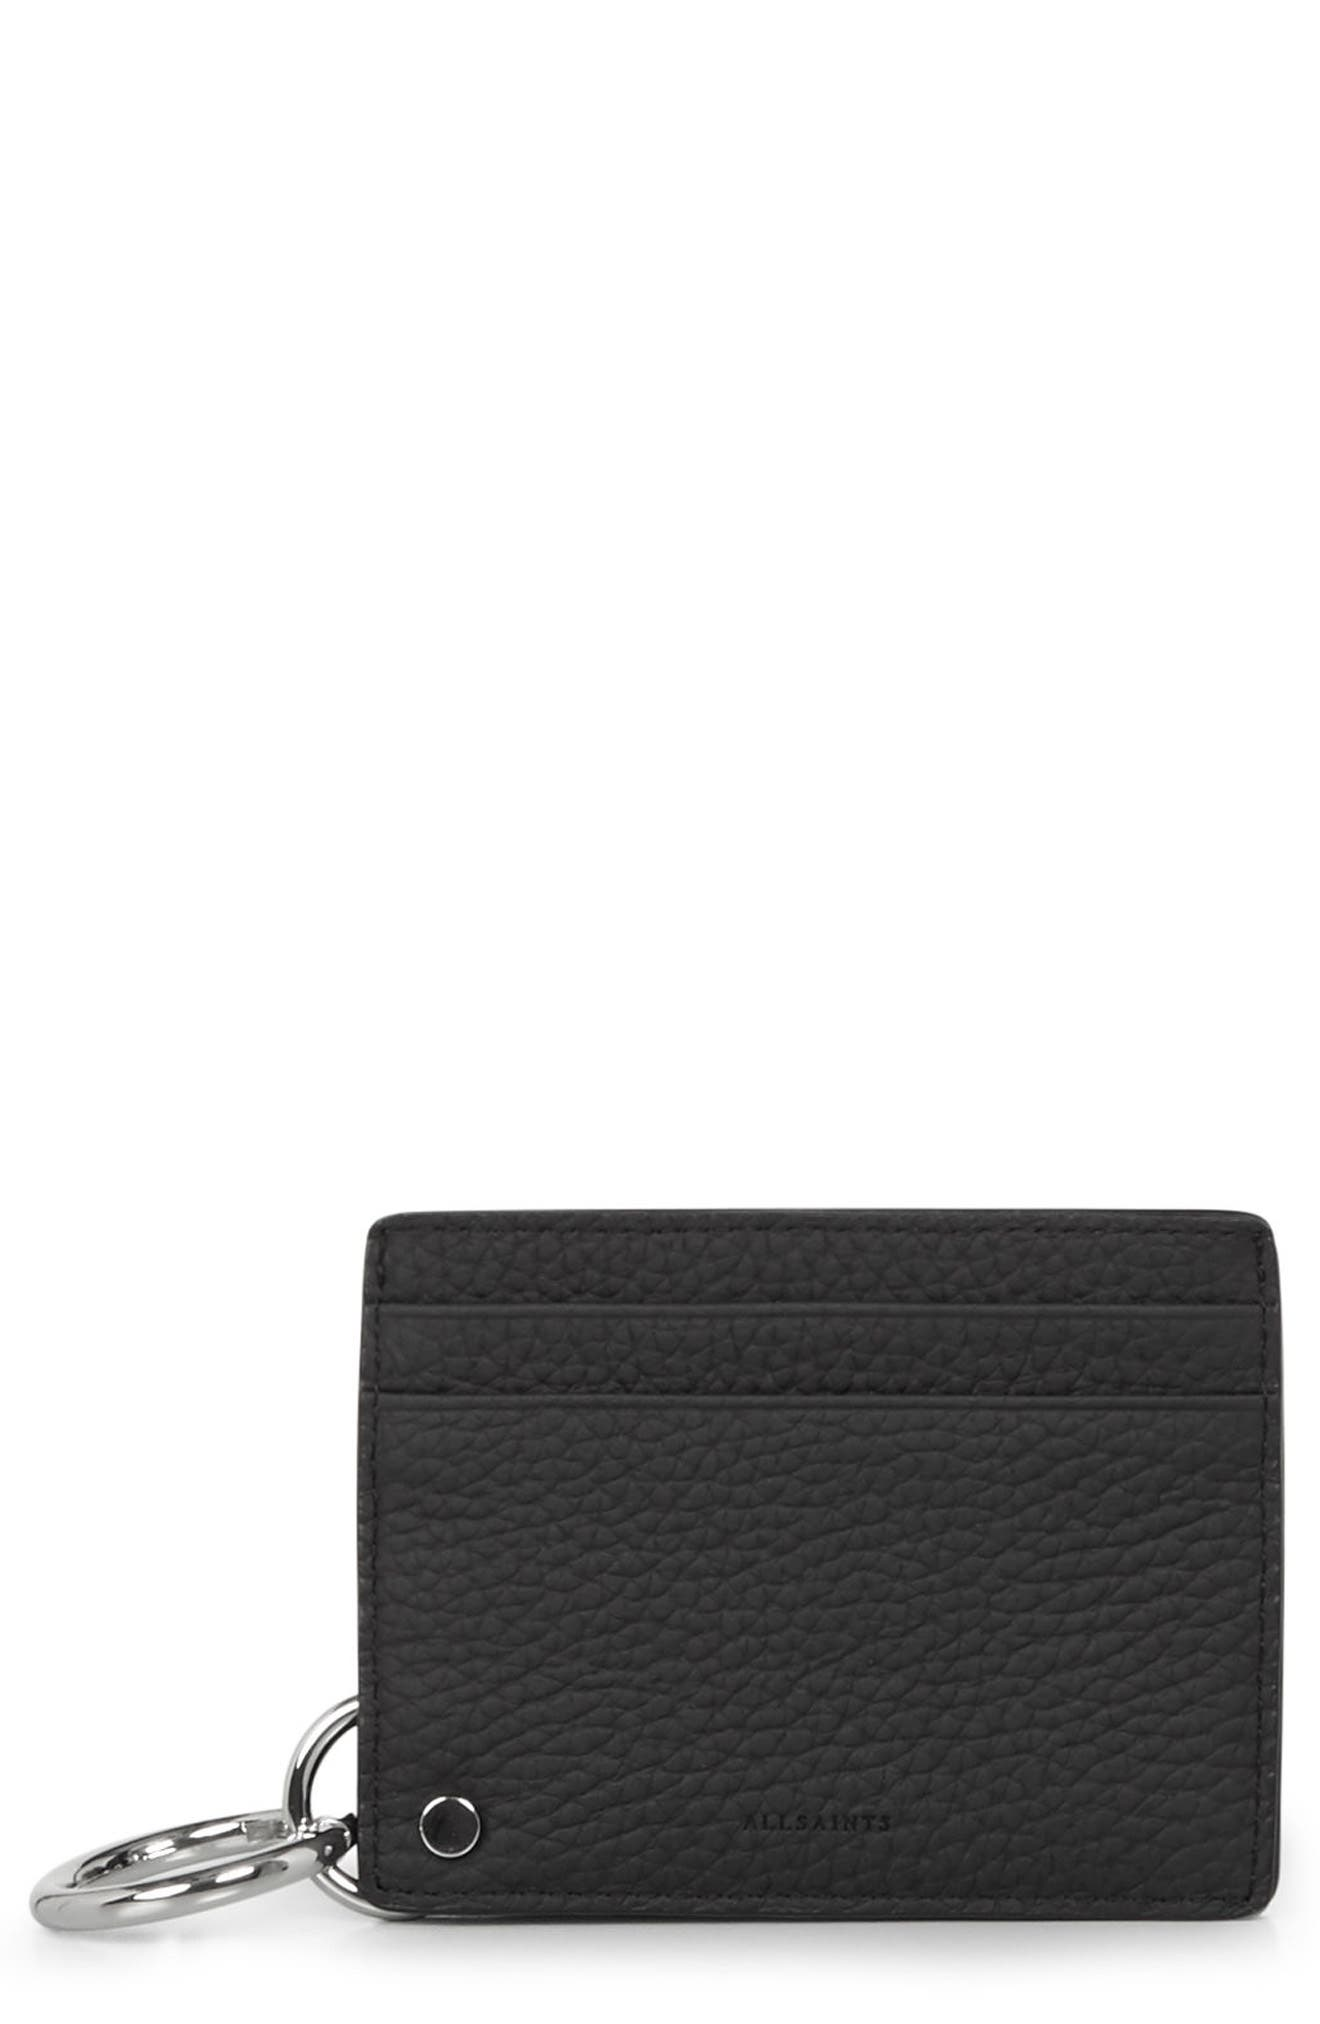 ALLSAINTS Fetch Mirror Leather Cardholder